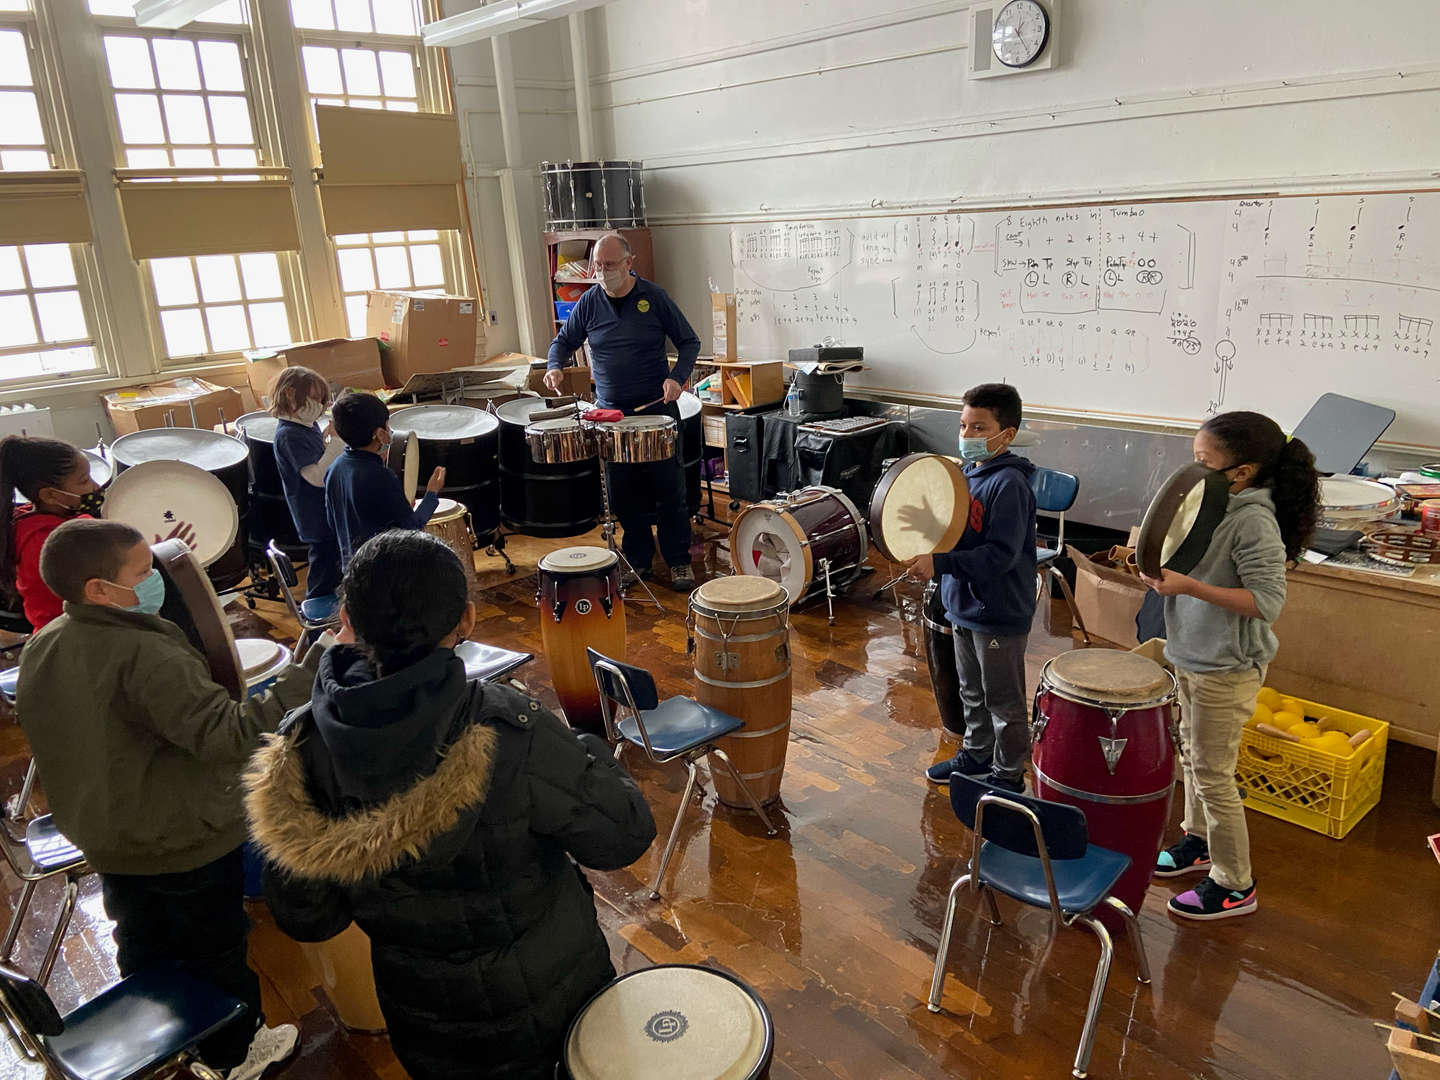 Students standing playing percussion instruments